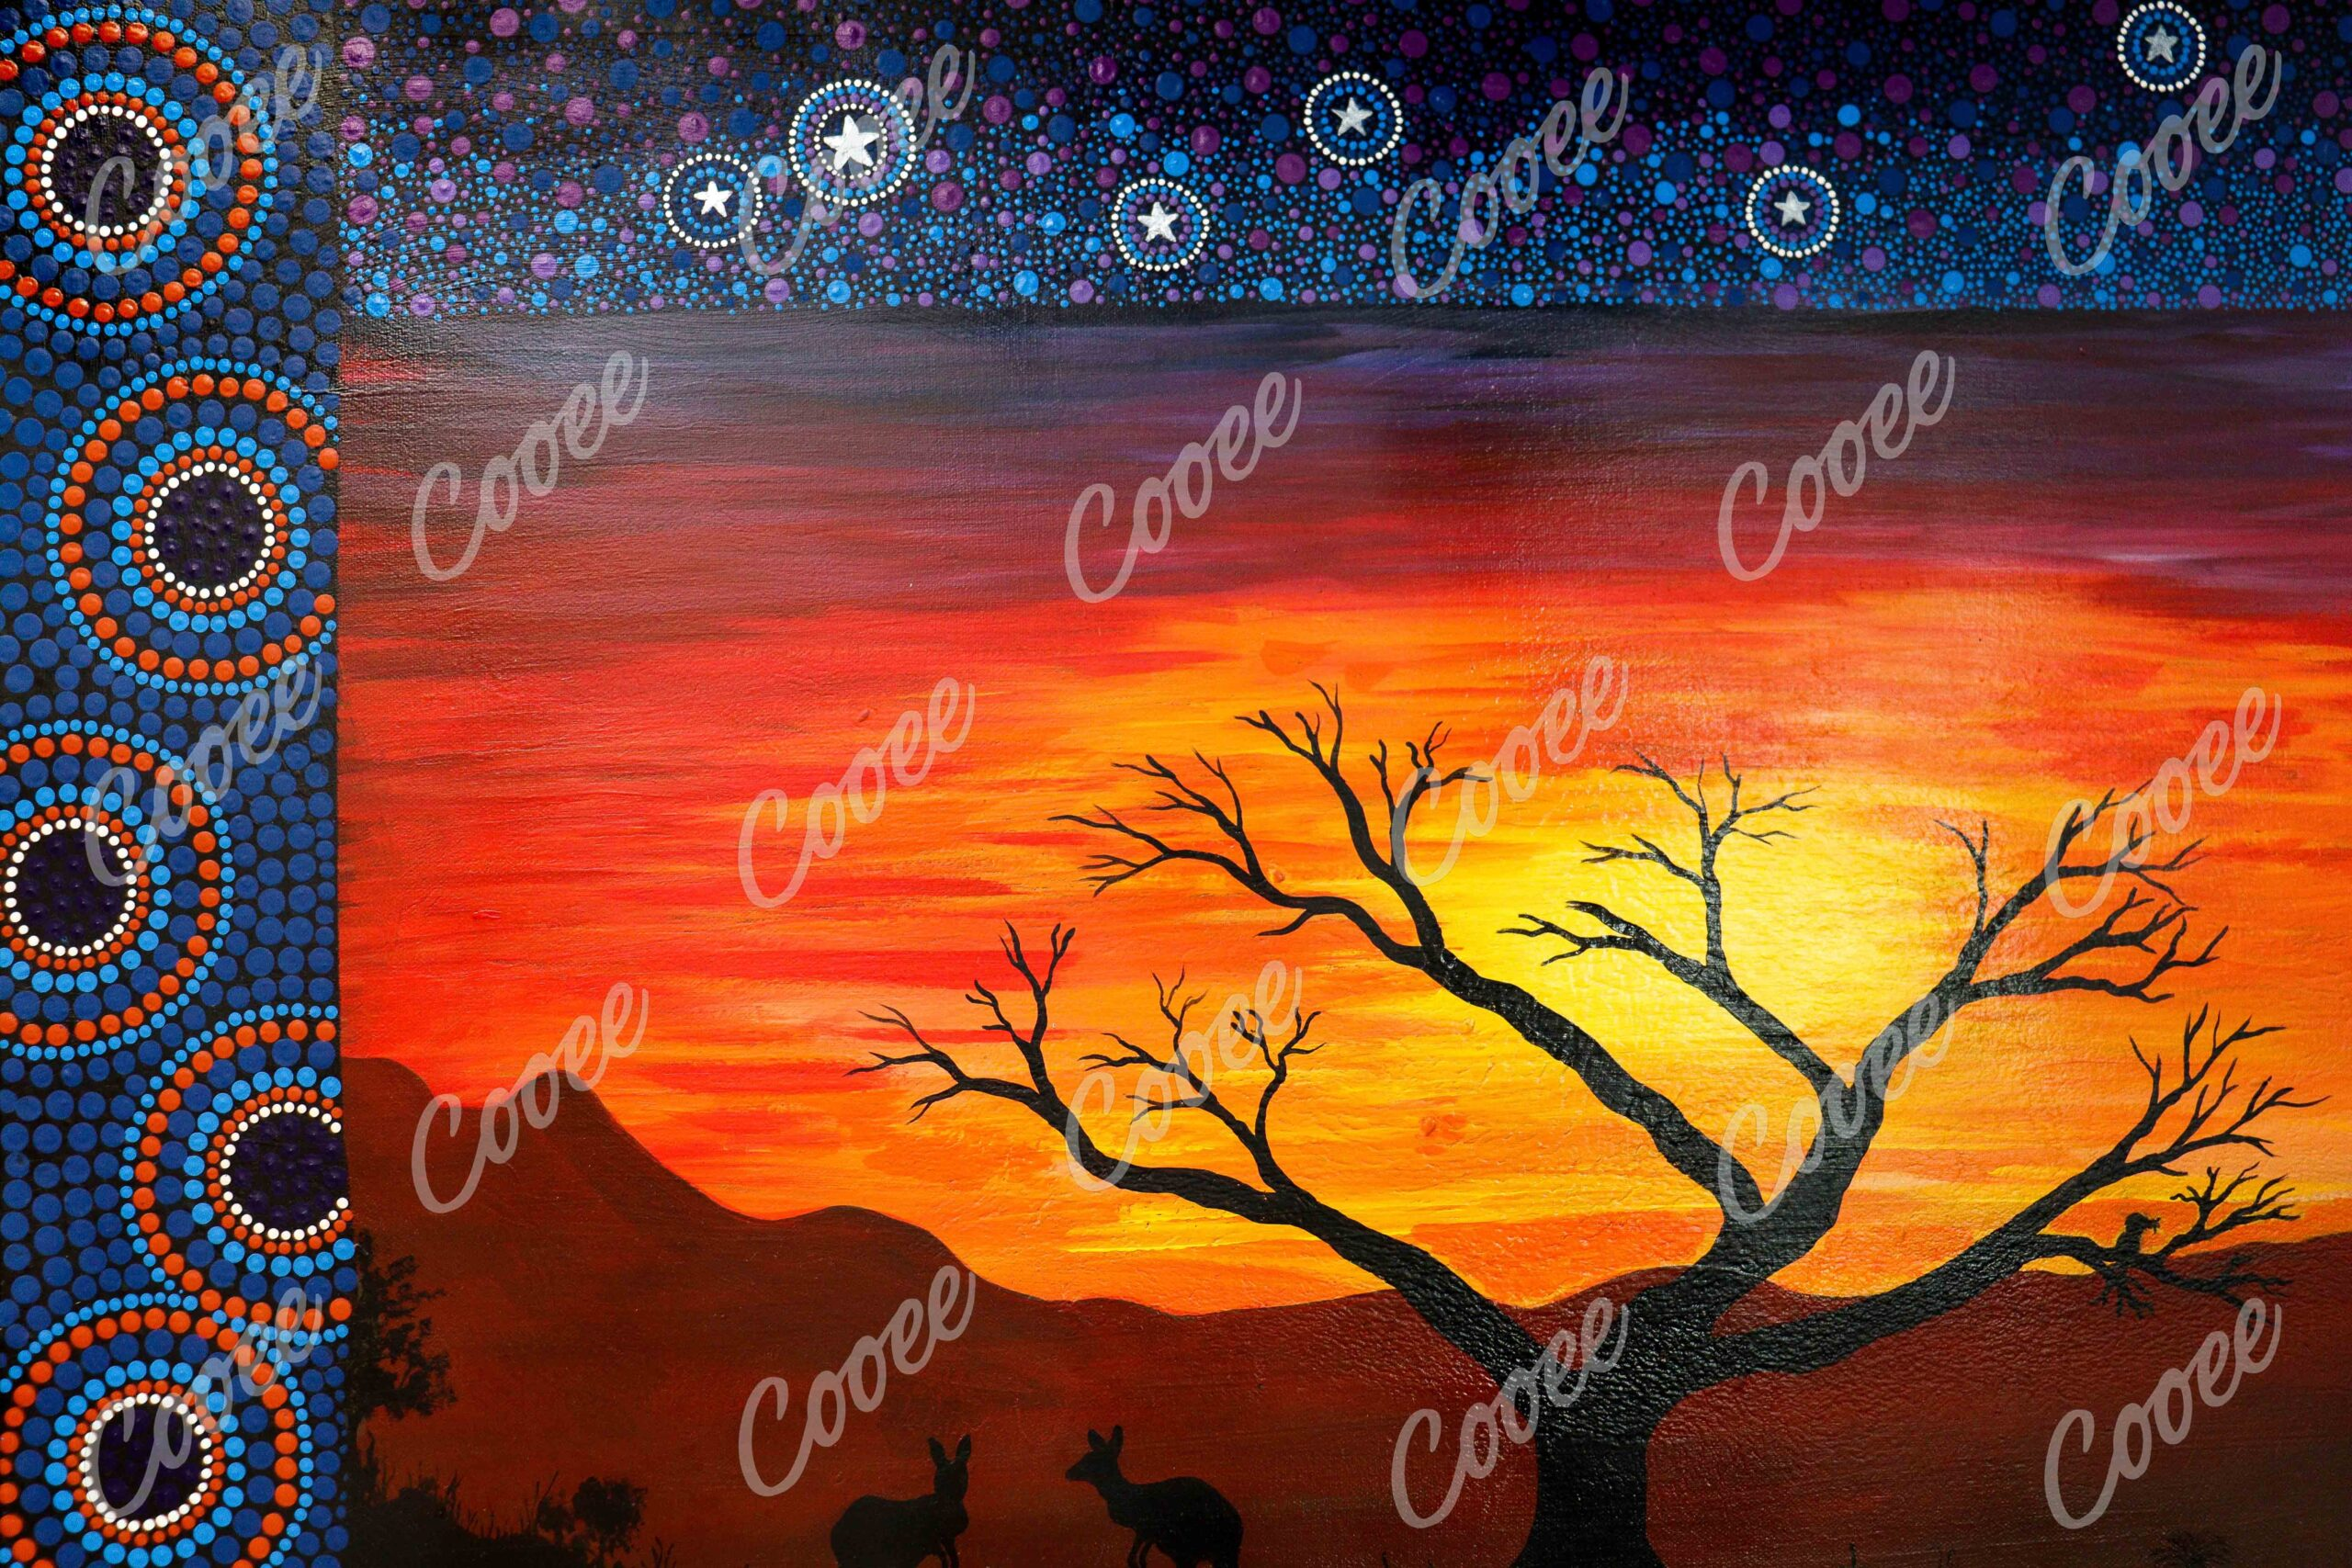 Cooee-Cafe-Original-Indigenous-Painting31